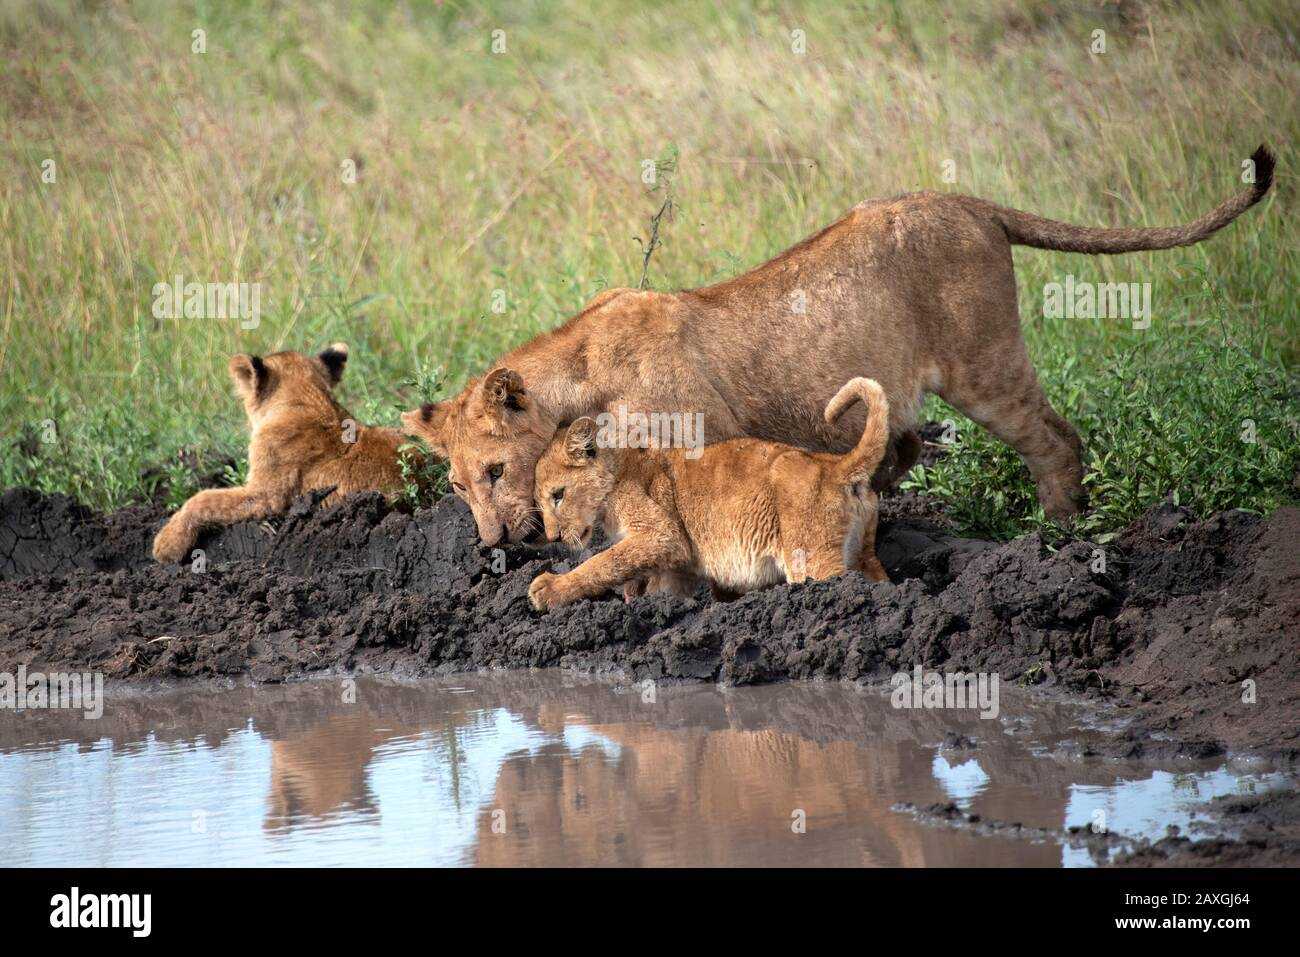 Lioness and cubs ready for some play time. Stock Photo